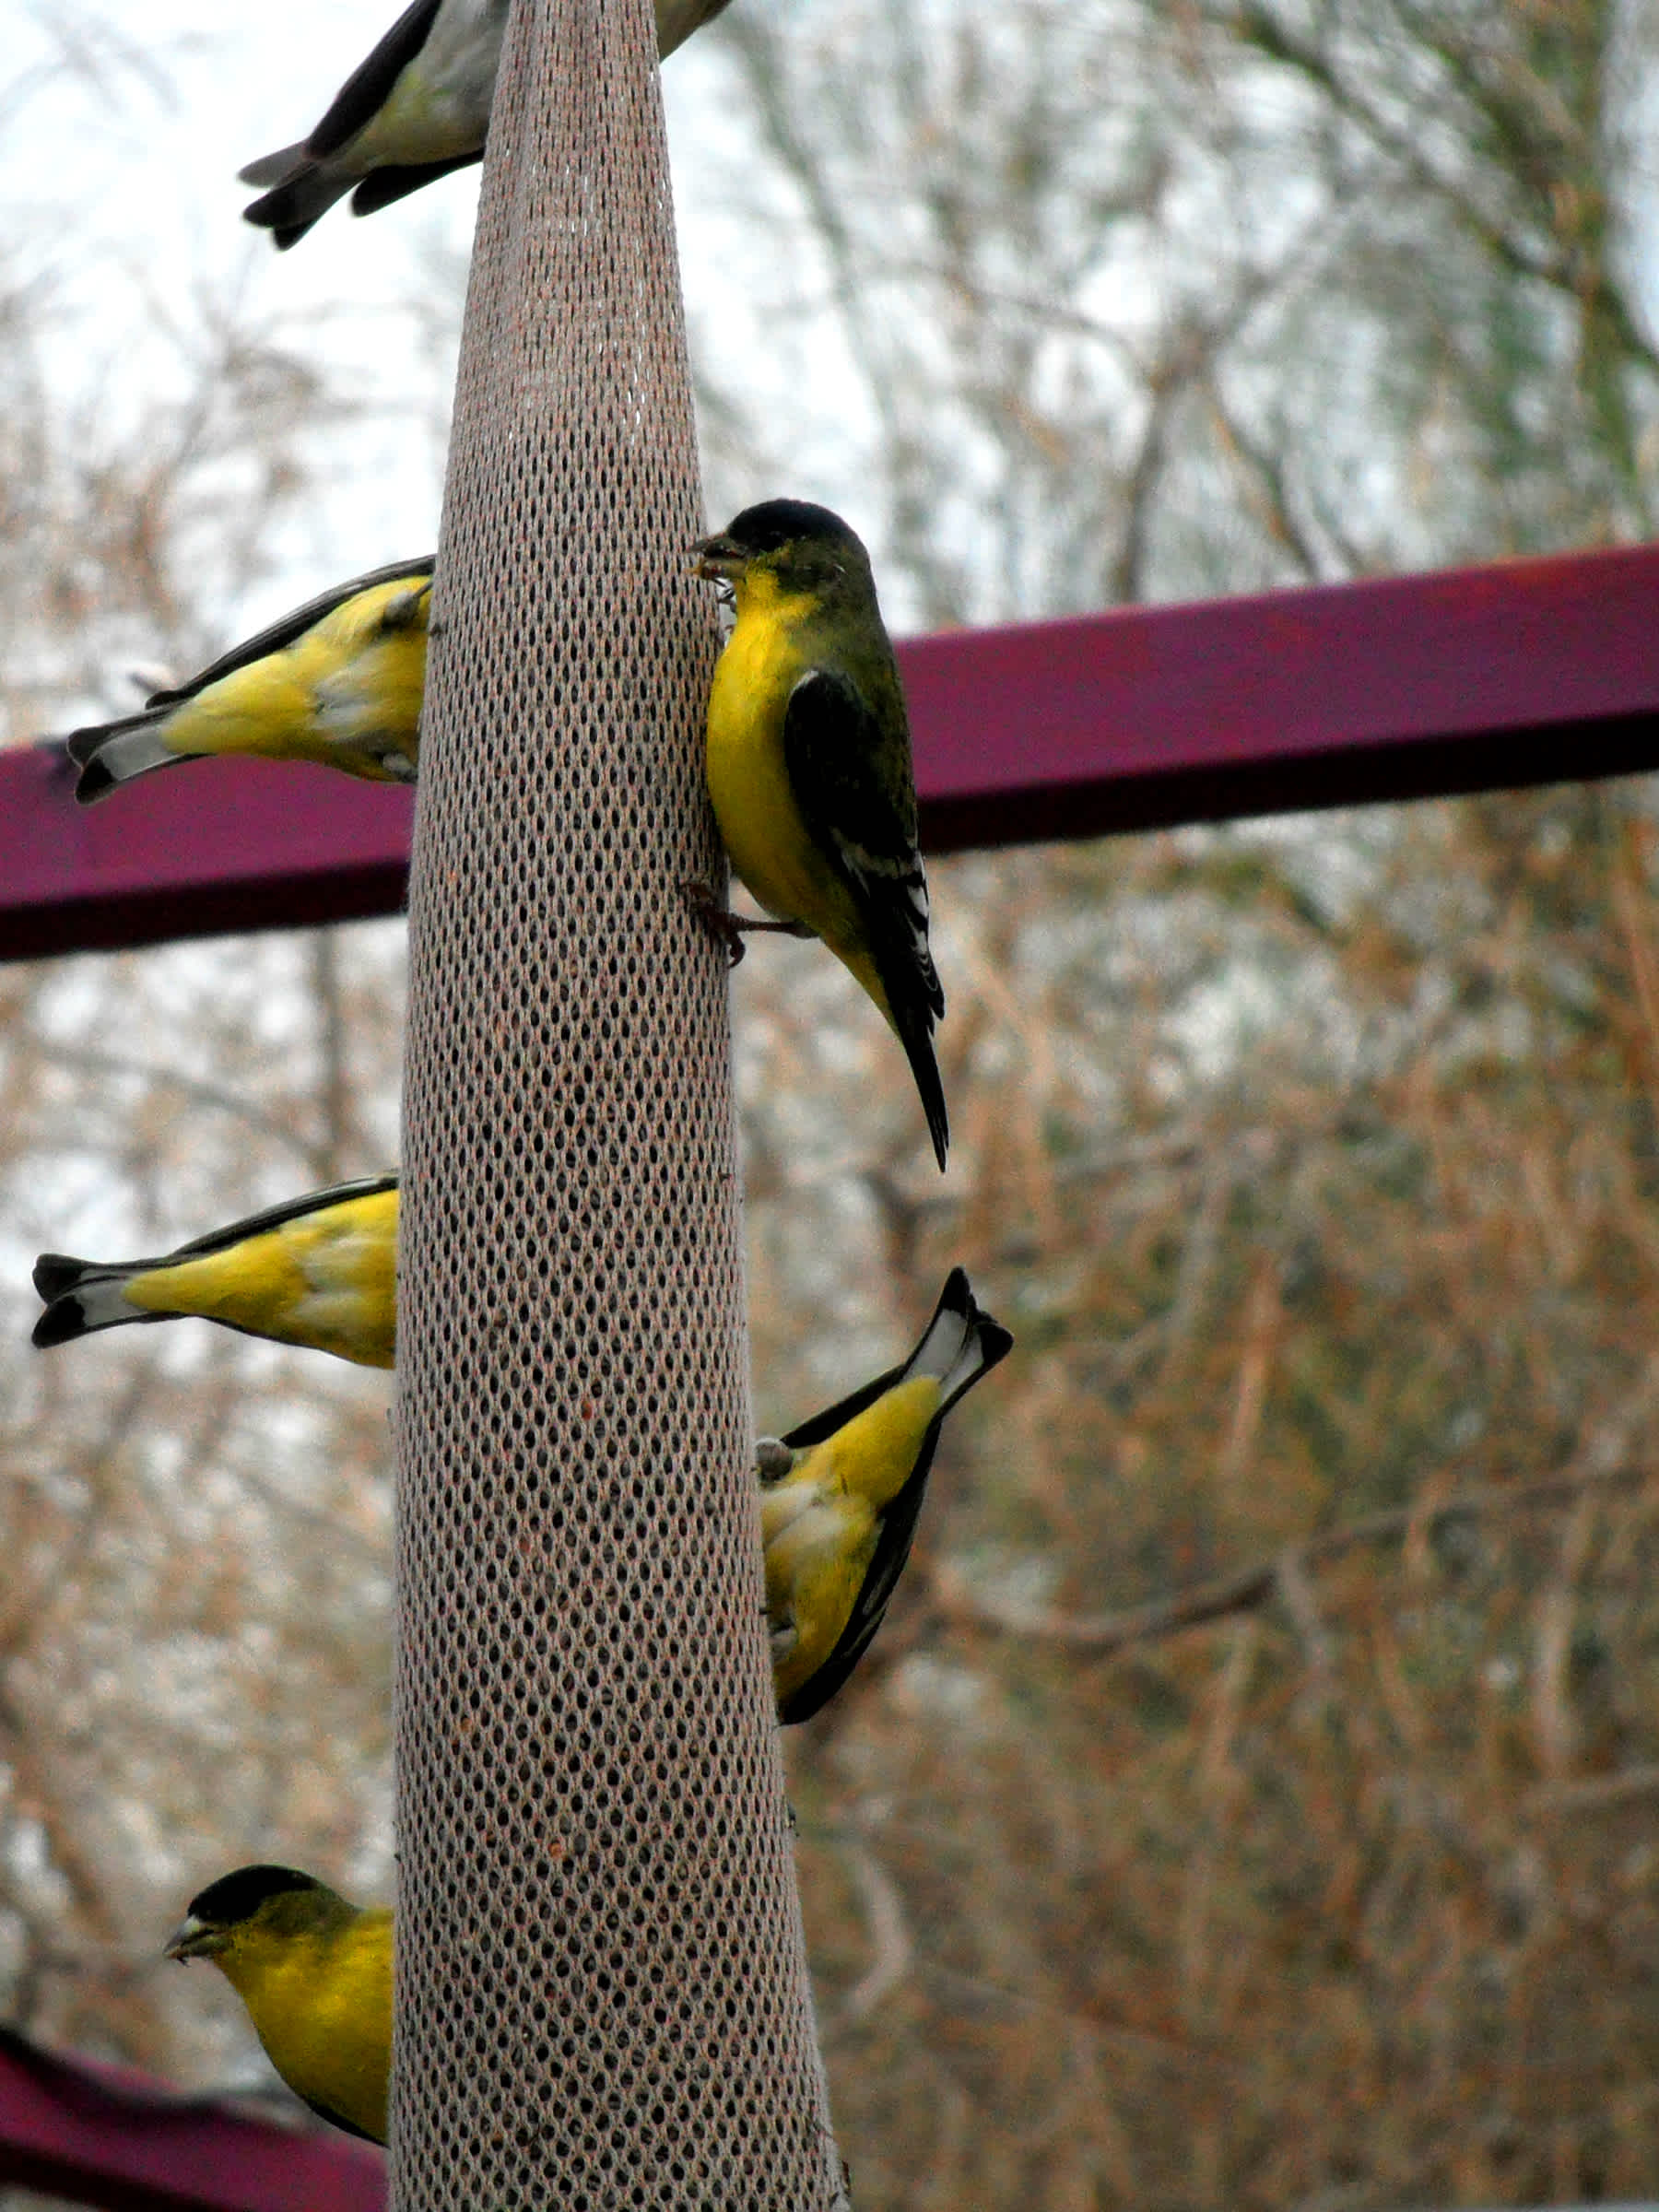 Yellow-stomach birds eating off bird feeder pillar.